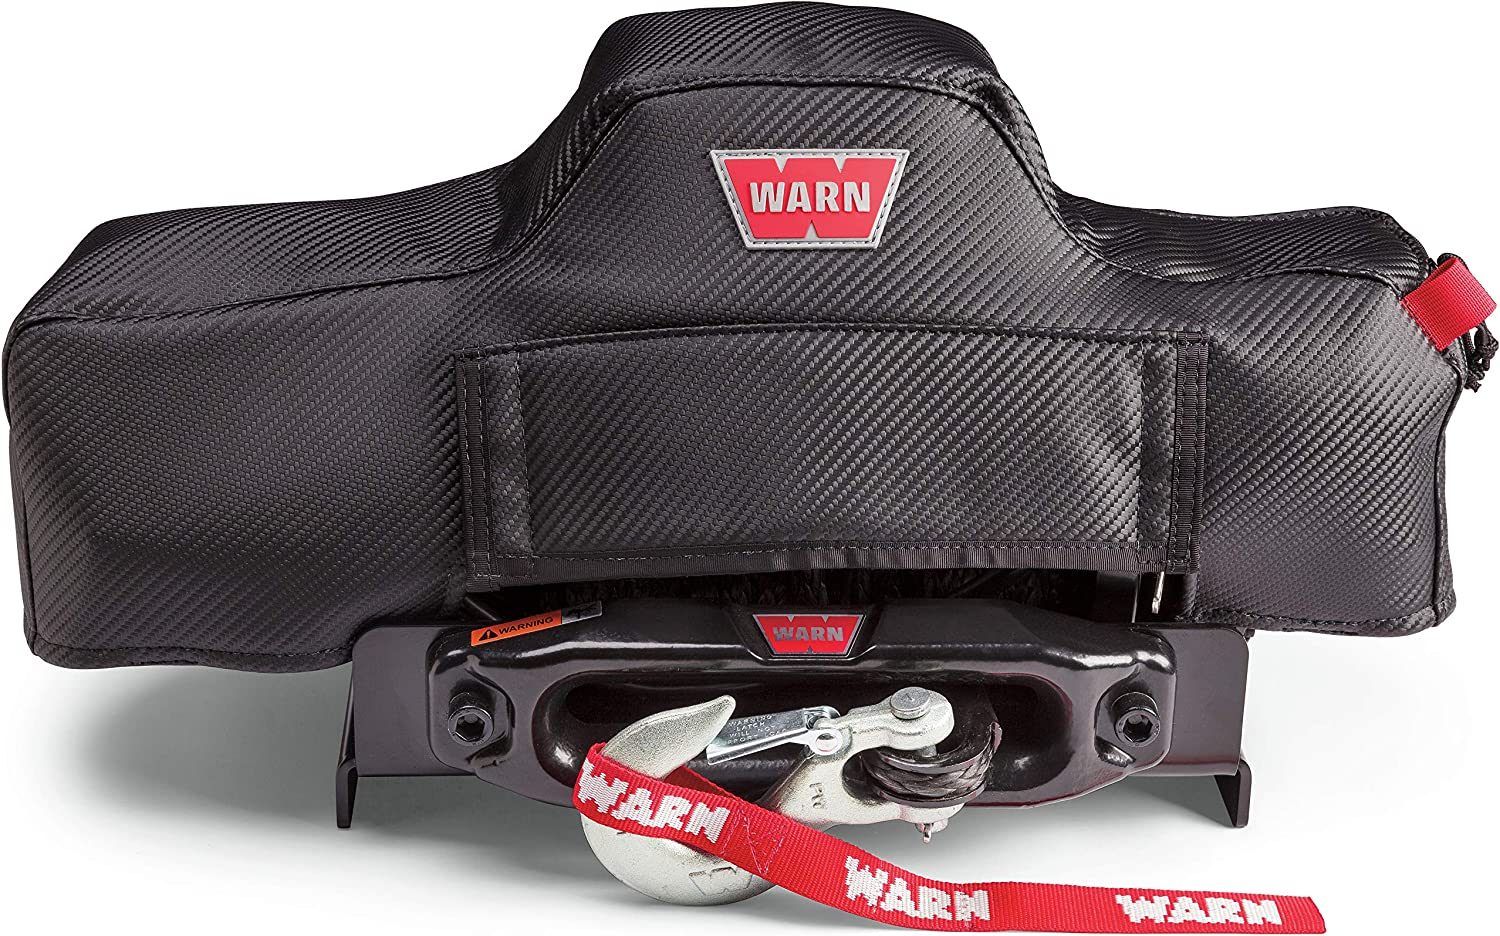 WARN 102642 Stealth Series Winch Cover, Fits: VR8, VR10, VR12